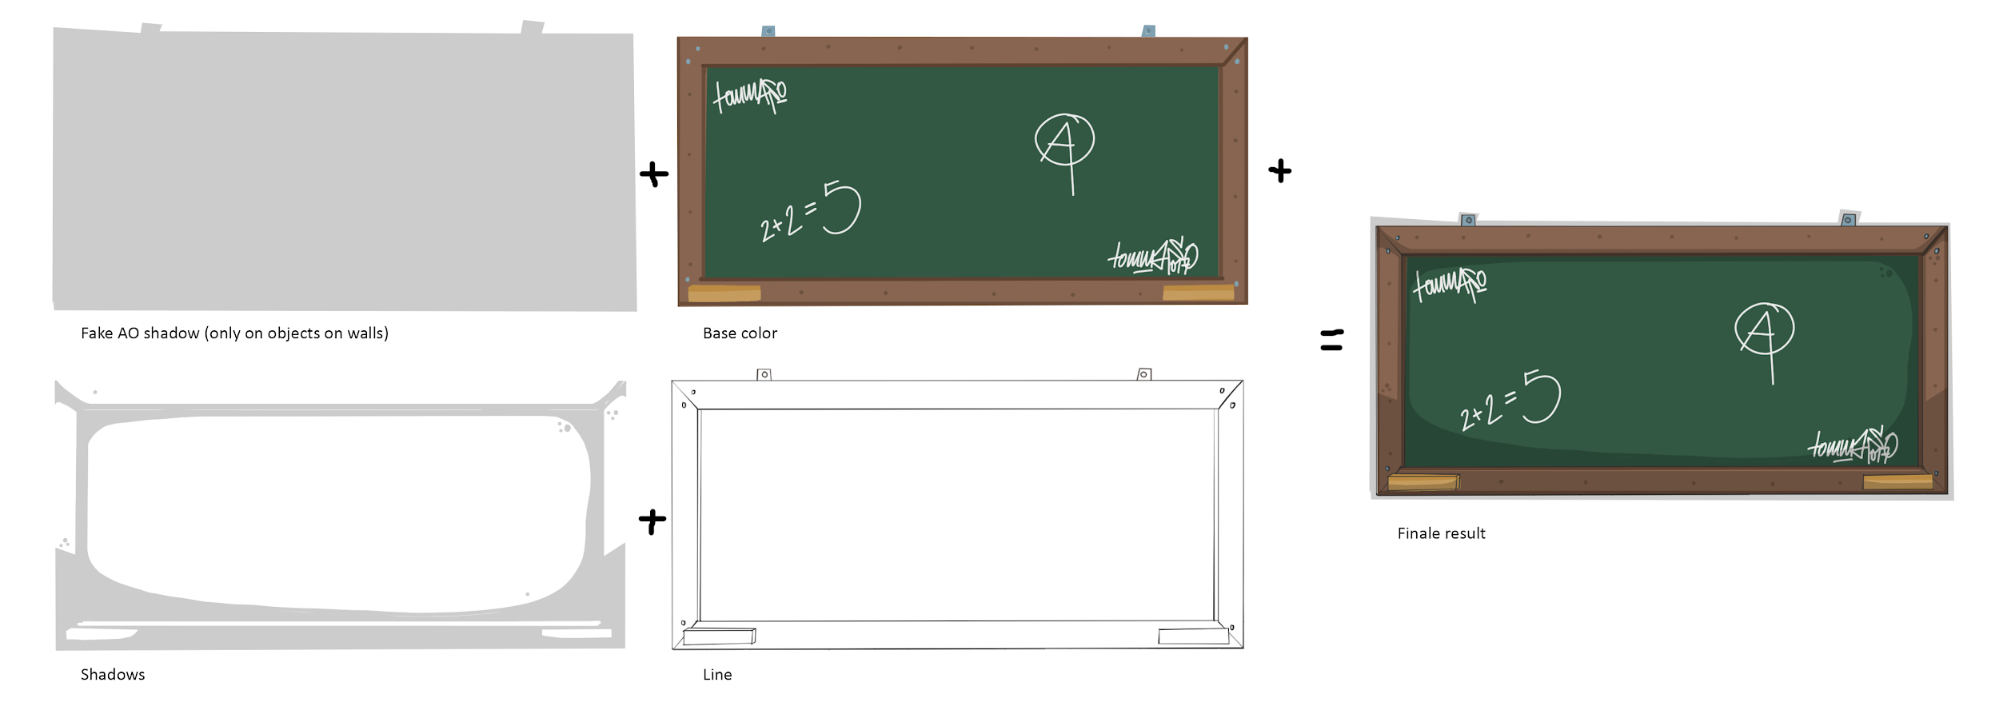 Art Spotlight Toon Classroom Sketchfab Blog Free Download Af75 Wiring Diagram Layers Composition For Sprites The Same Technique As Was Used Texturing 3d Models